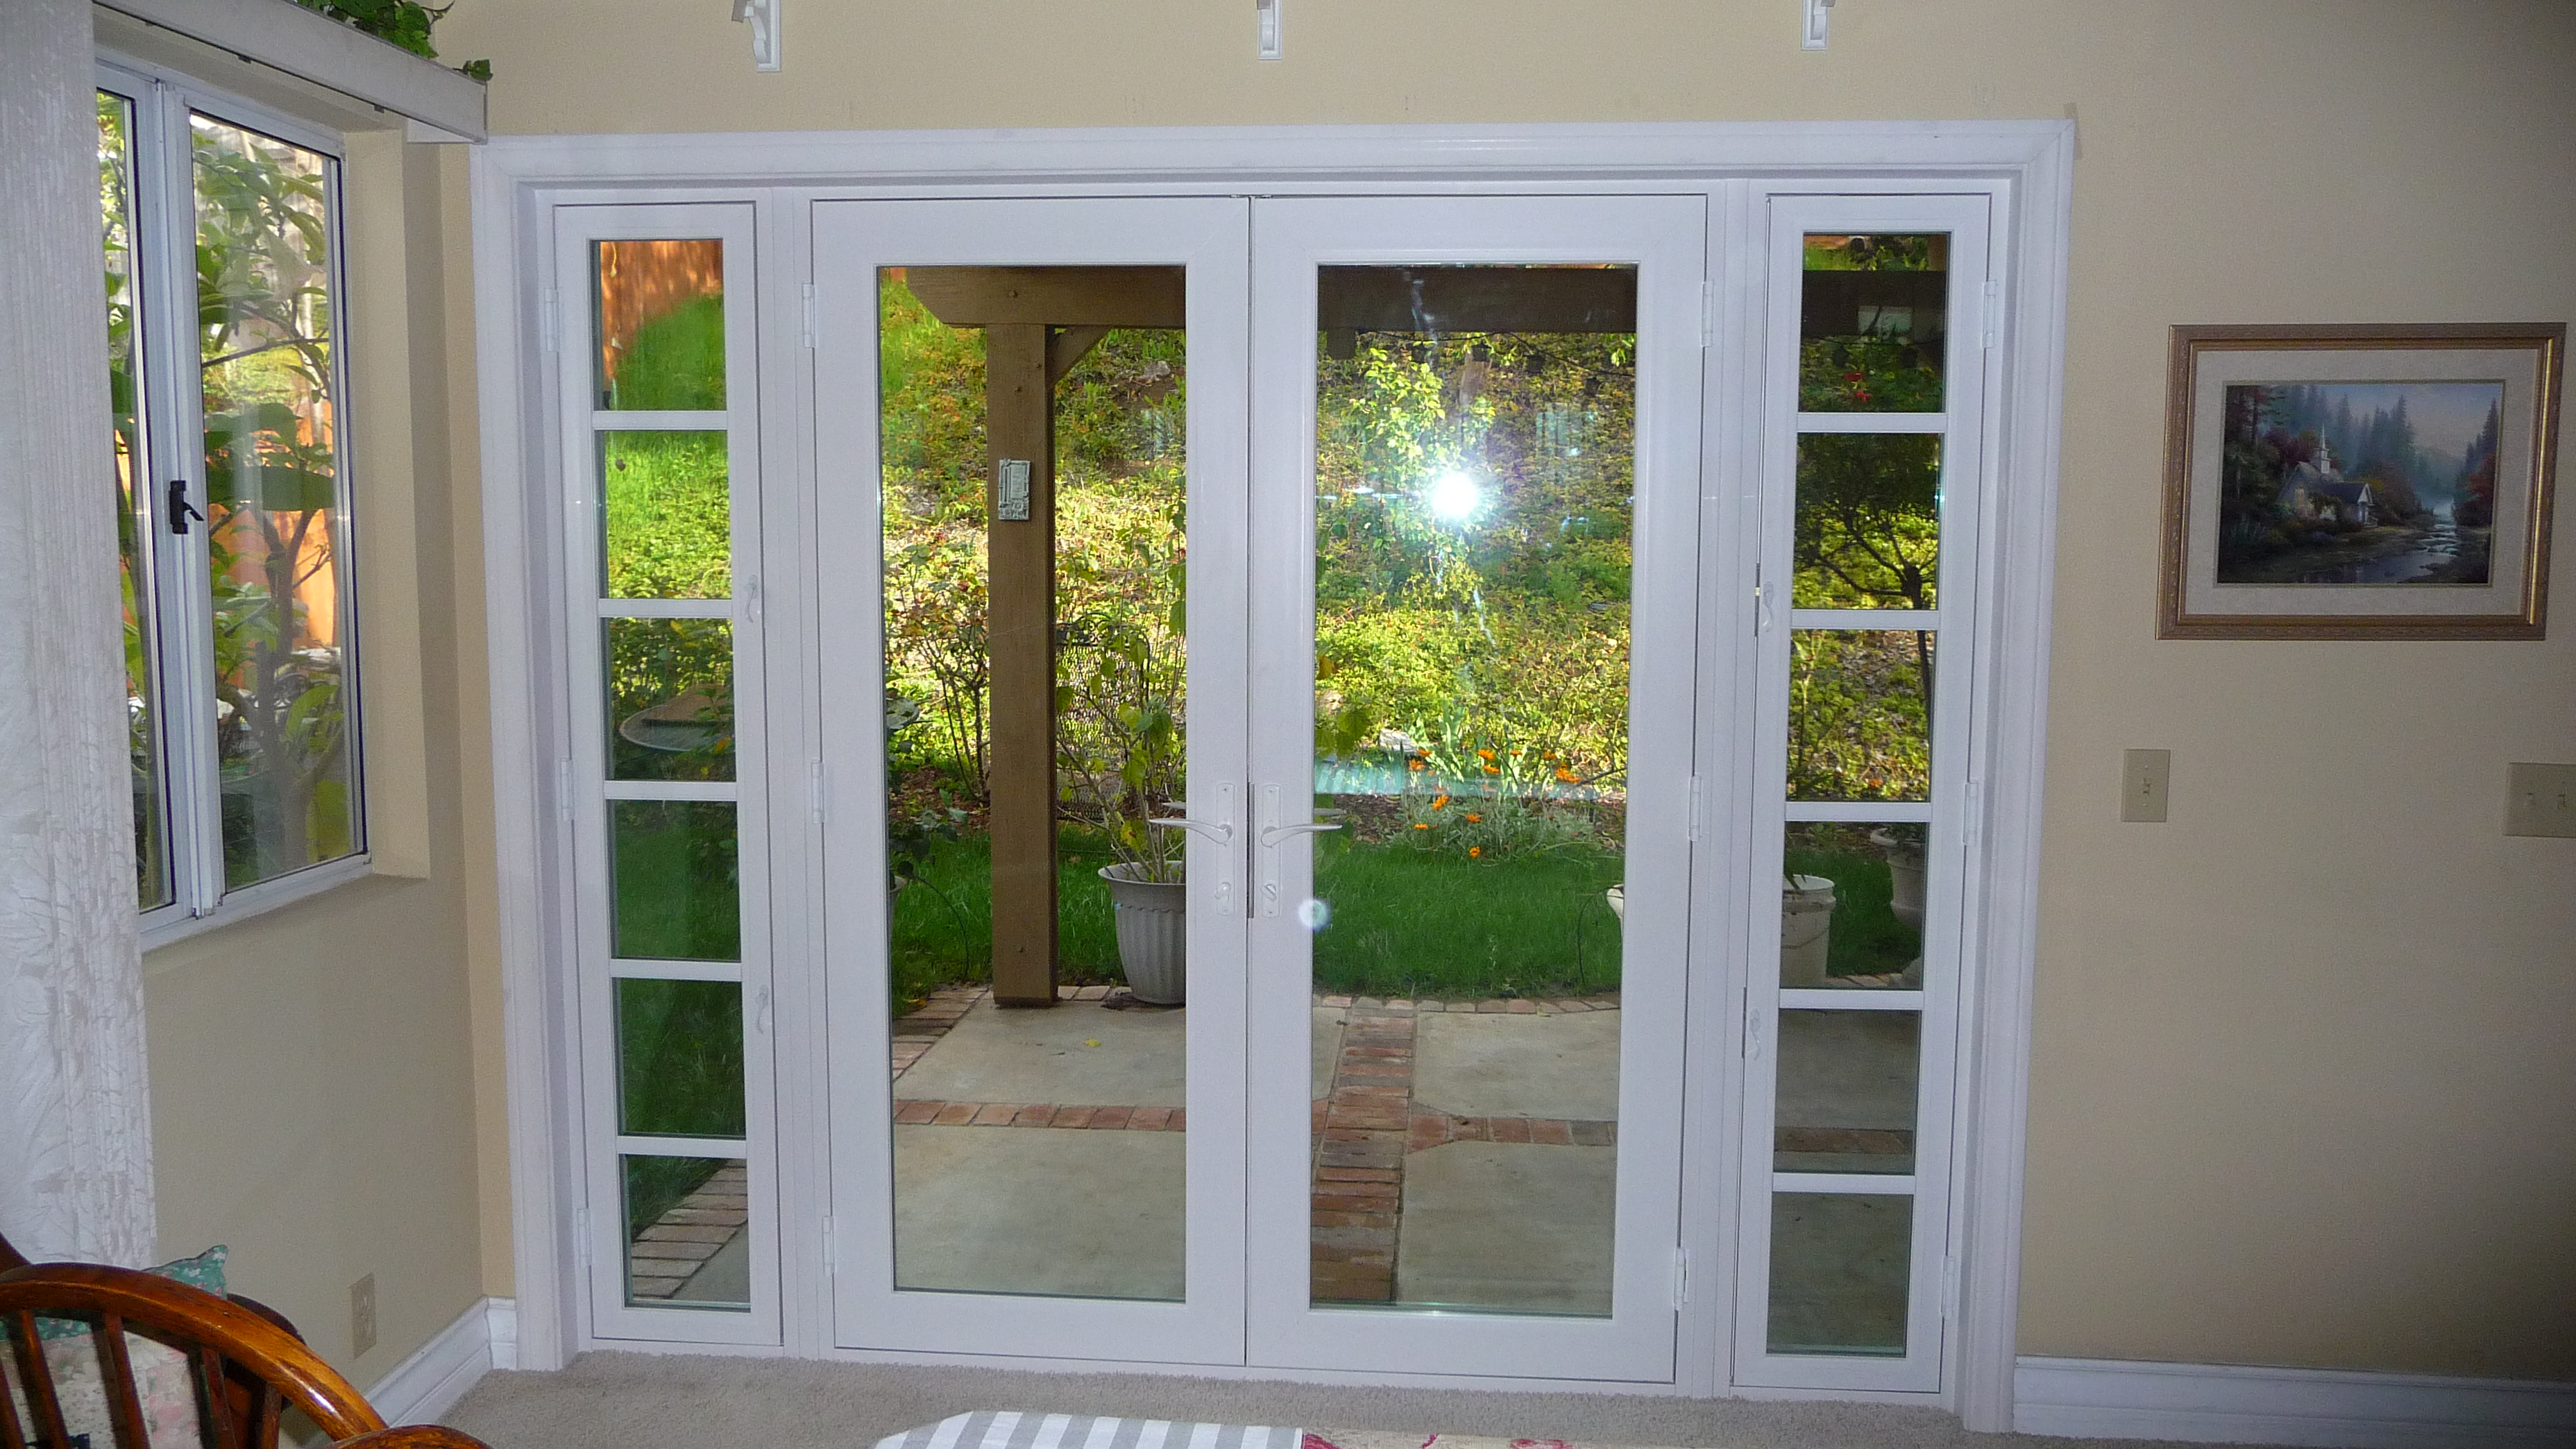 2088 #455F2B French Doors Patio Sidelites Coughlin Windows And Doors pic Patio Doors With Side Windows 44913712